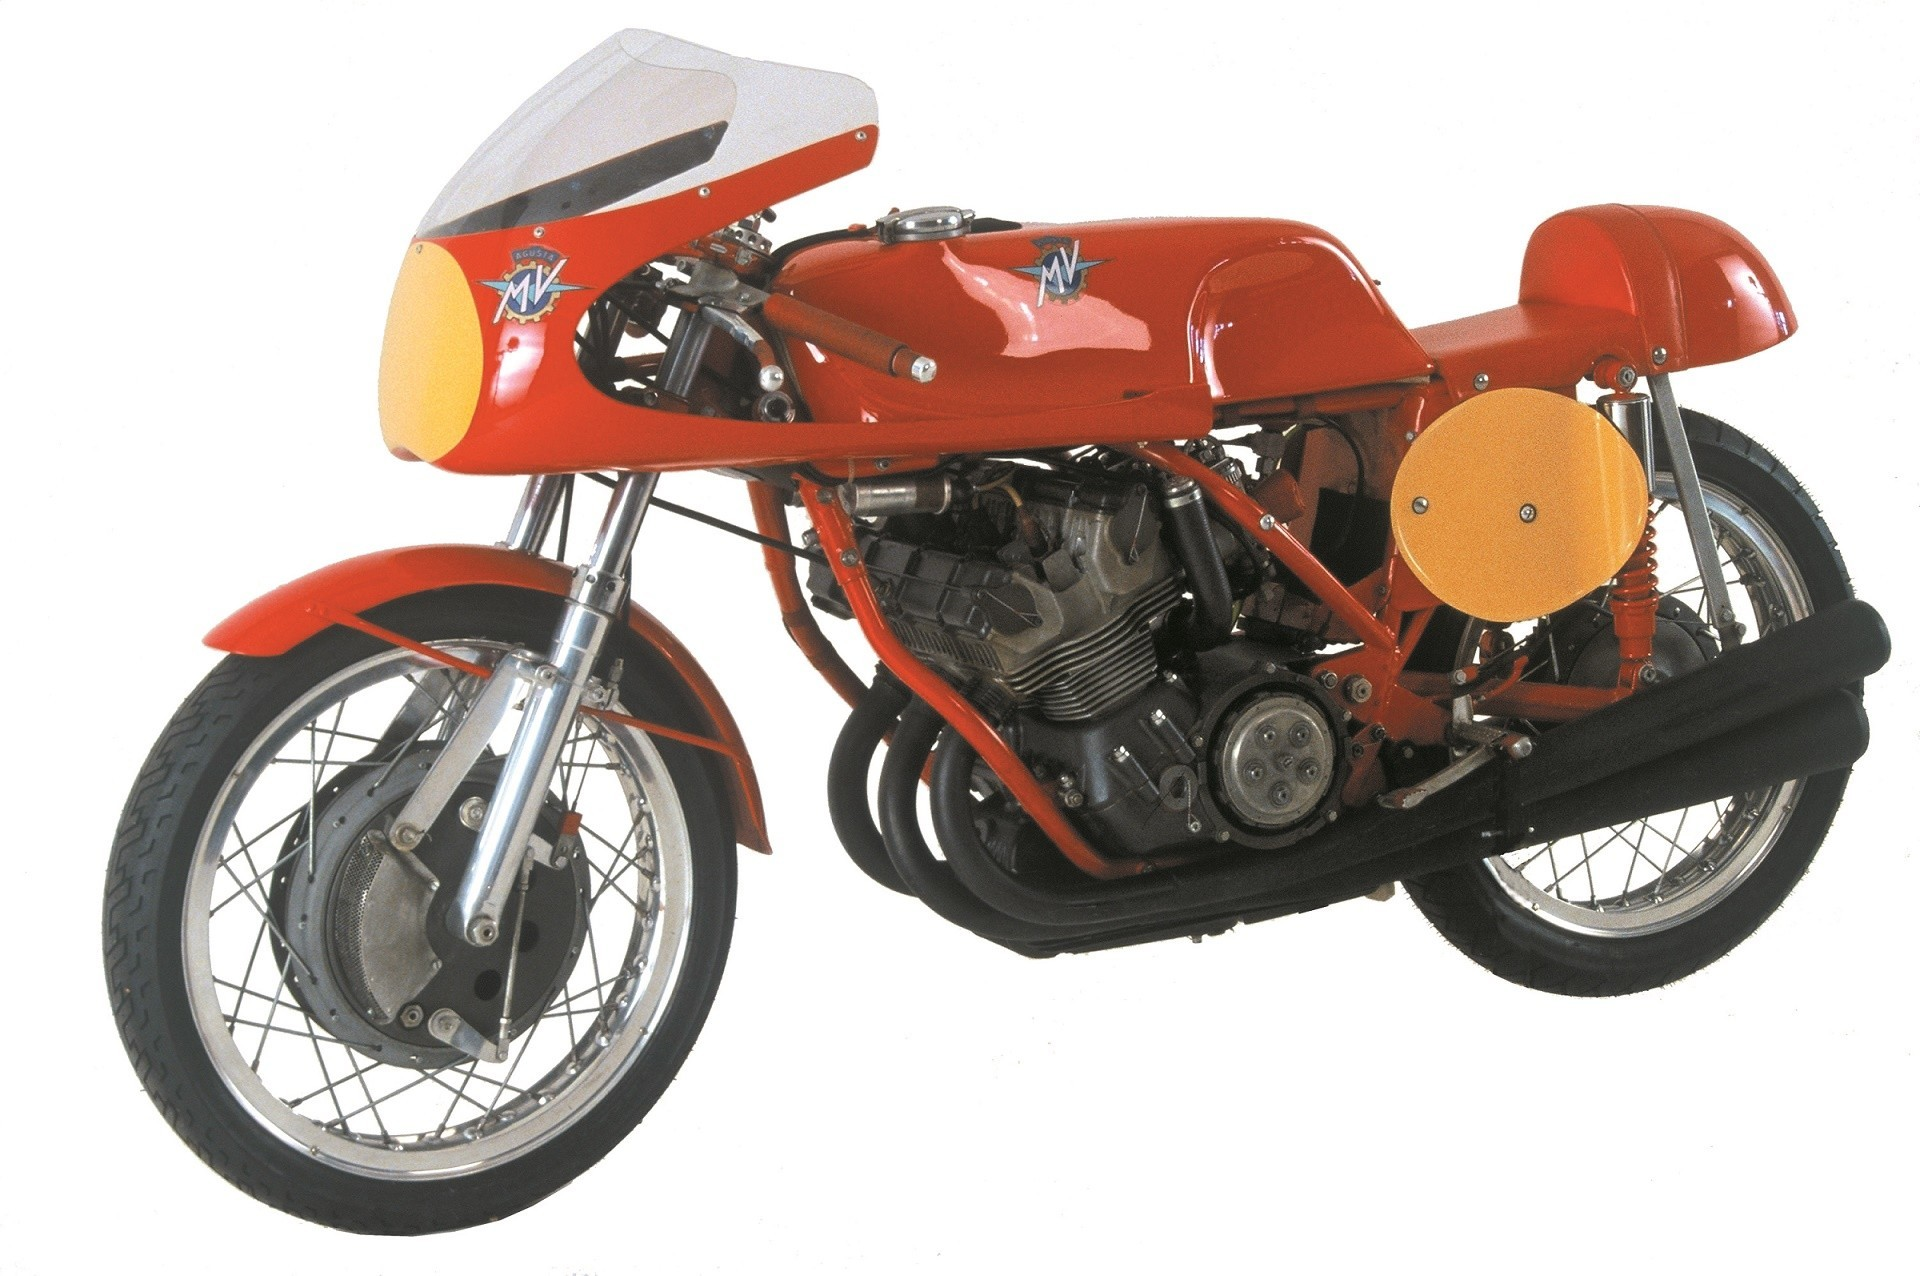 Original prototype of an MV August 3-cylinder cycle is on display at the Solvang Vintage Motorcycle Museum.